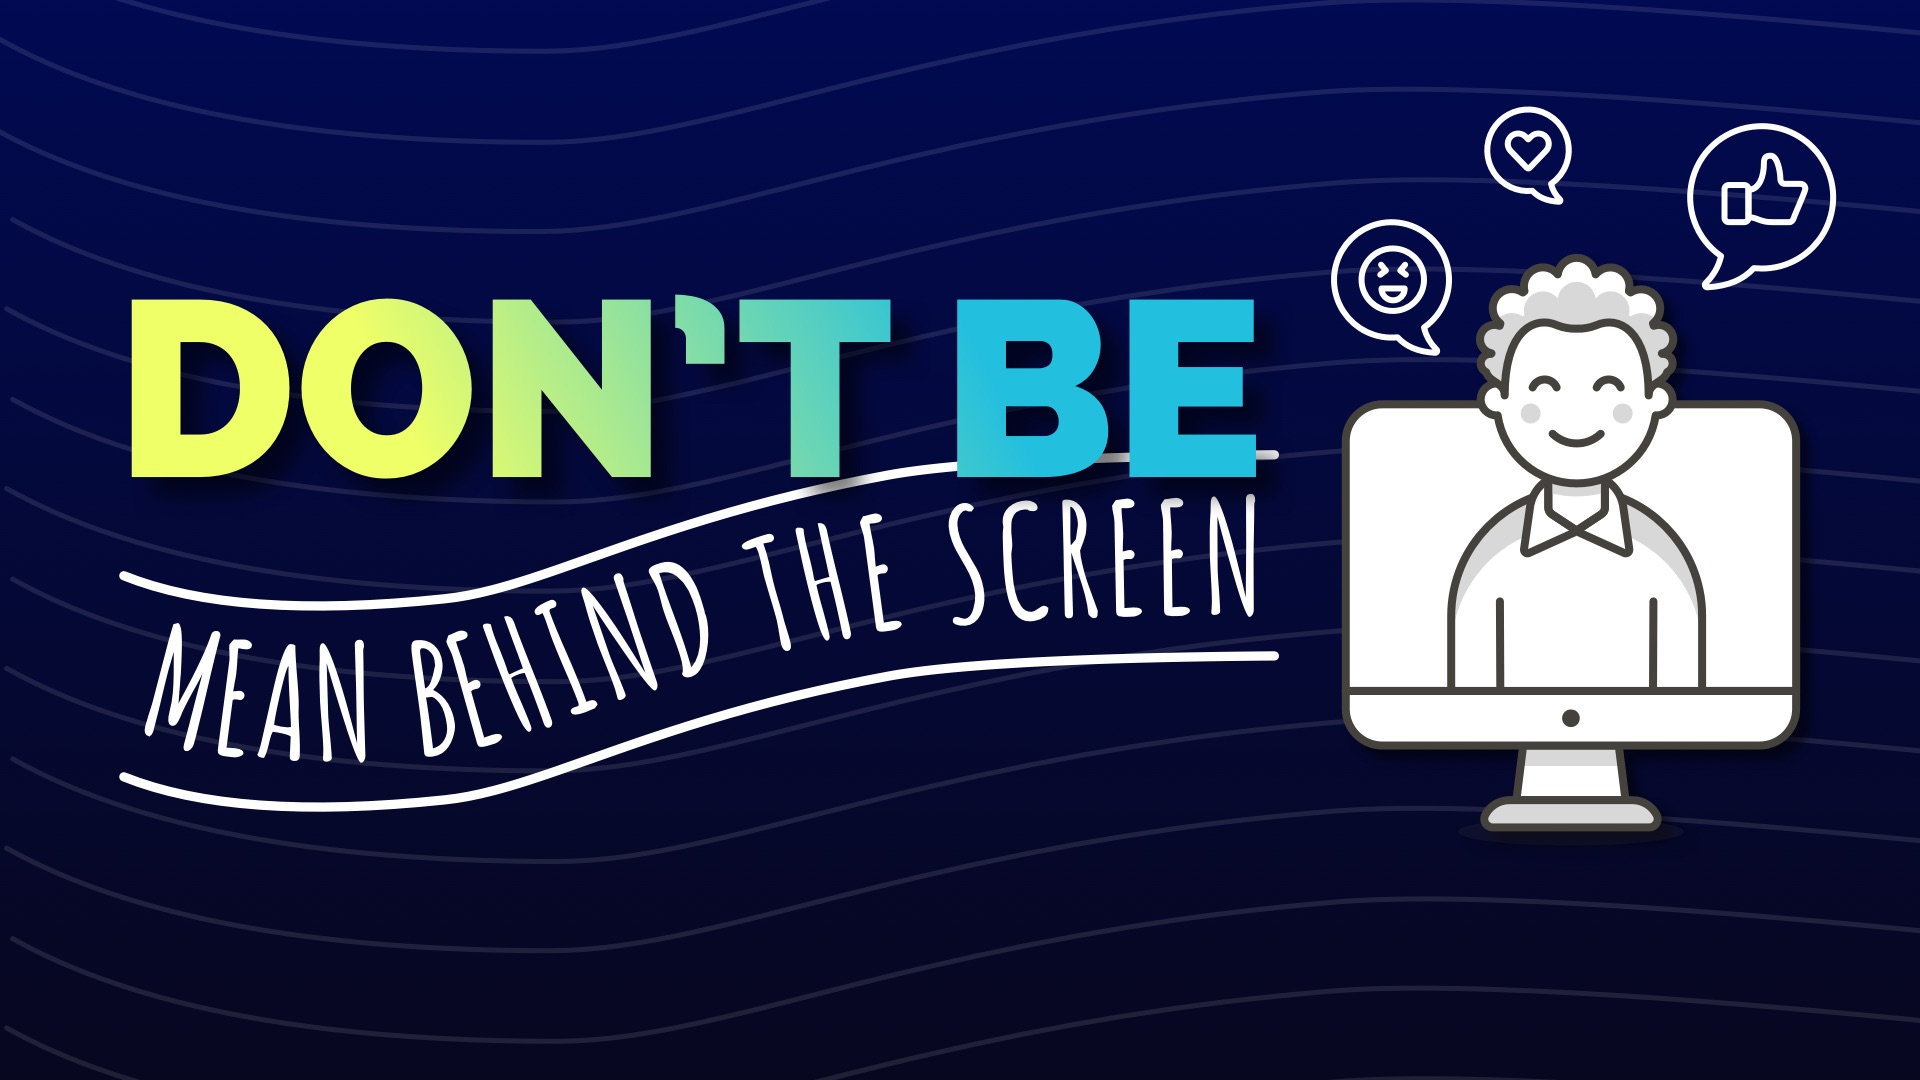 anti-bullying-poster-dont-be-mean-behind-the-screen